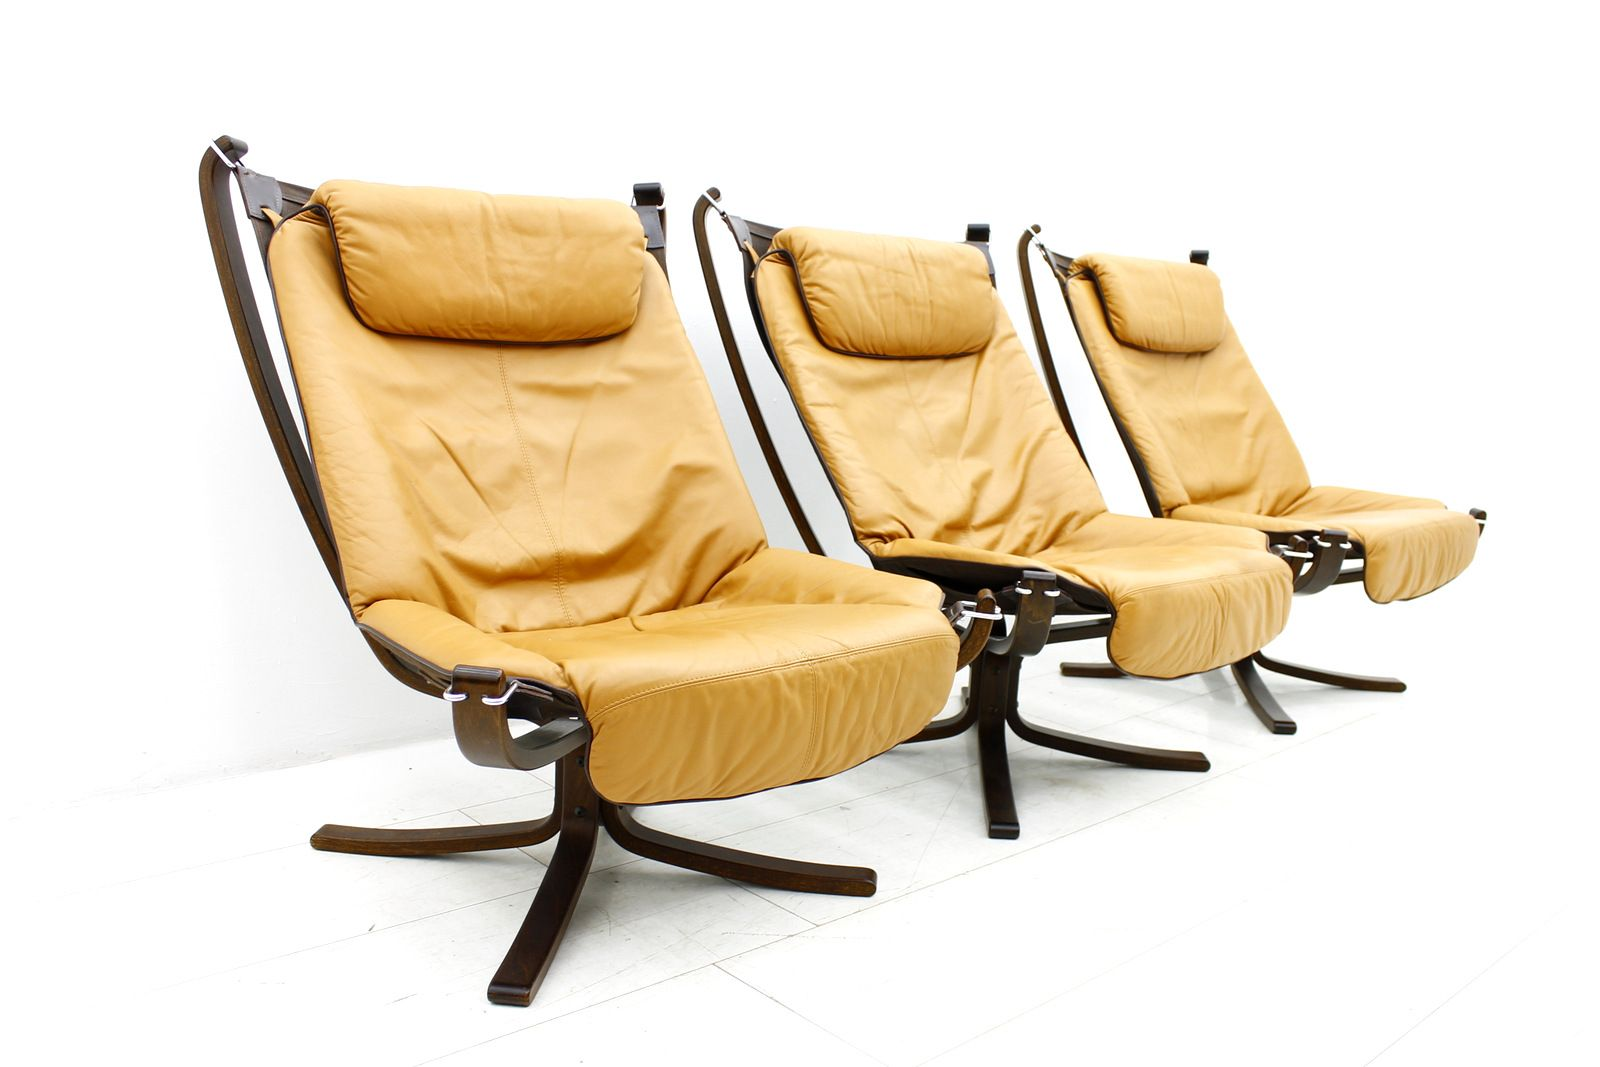 Norwegian Falcon Lounge Chair by Sigurd Resell for Vatne Mobler, 1971 for sale at Pamono